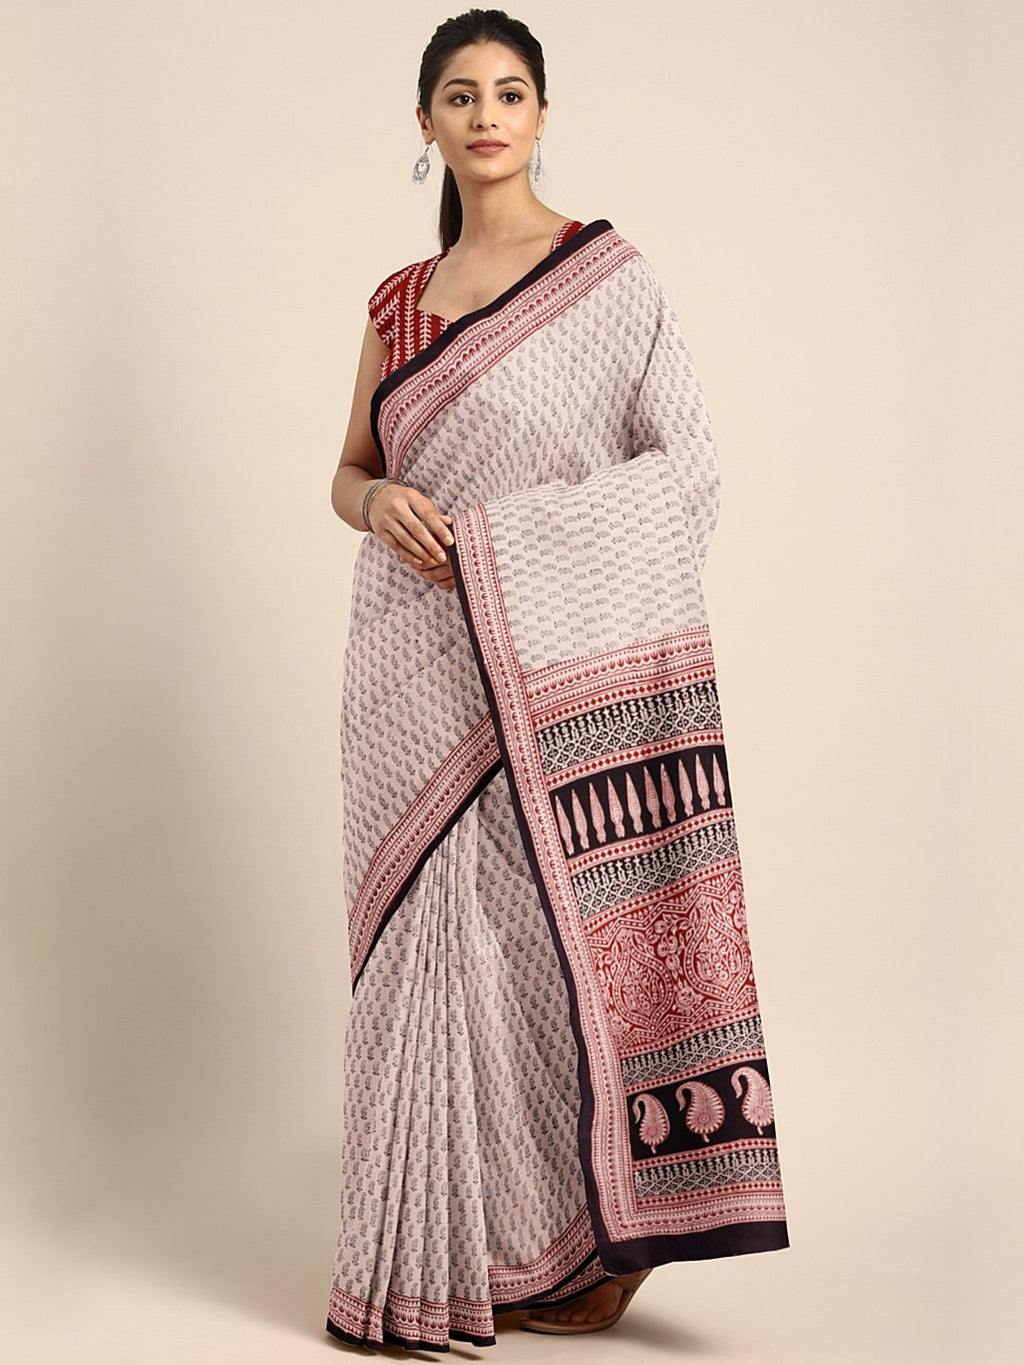 Off-White Maroon Handblock Print Saree-Saree-Kalakari India-MYBASA0021-Bagh, Cotton, Geographical Indication, Hand Blocks, Hand Crafted, Heritage Prints, Natural Dyes, Sarees, Sustainable Fabrics-[Linen,Ethnic,wear,Fashionista,Handloom,Handicraft,Indigo,blockprint,block,print,Cotton,Chanderi,Blue, latest,classy,party,bollywood,trendy,summer,style,traditional,formal,elegant,unique,style,hand,block,print, dabu,booti,gift,present,glamorous,affordable,collectible,Sari,Saree,printed, holi, Diwali, bi